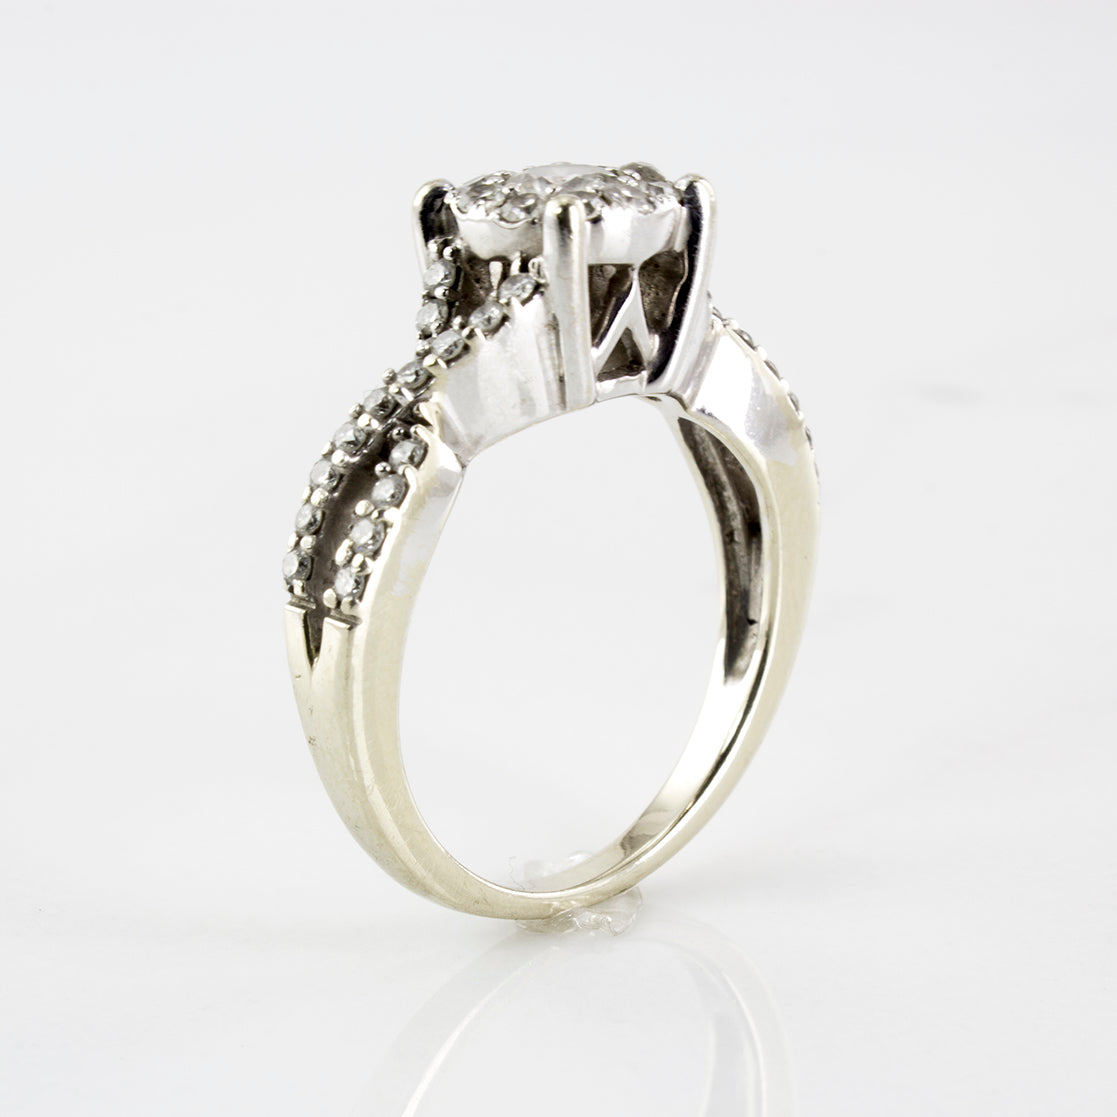 Braided Band Diamond Halo Ring | 0.77 ctw | SZ 5.75 |